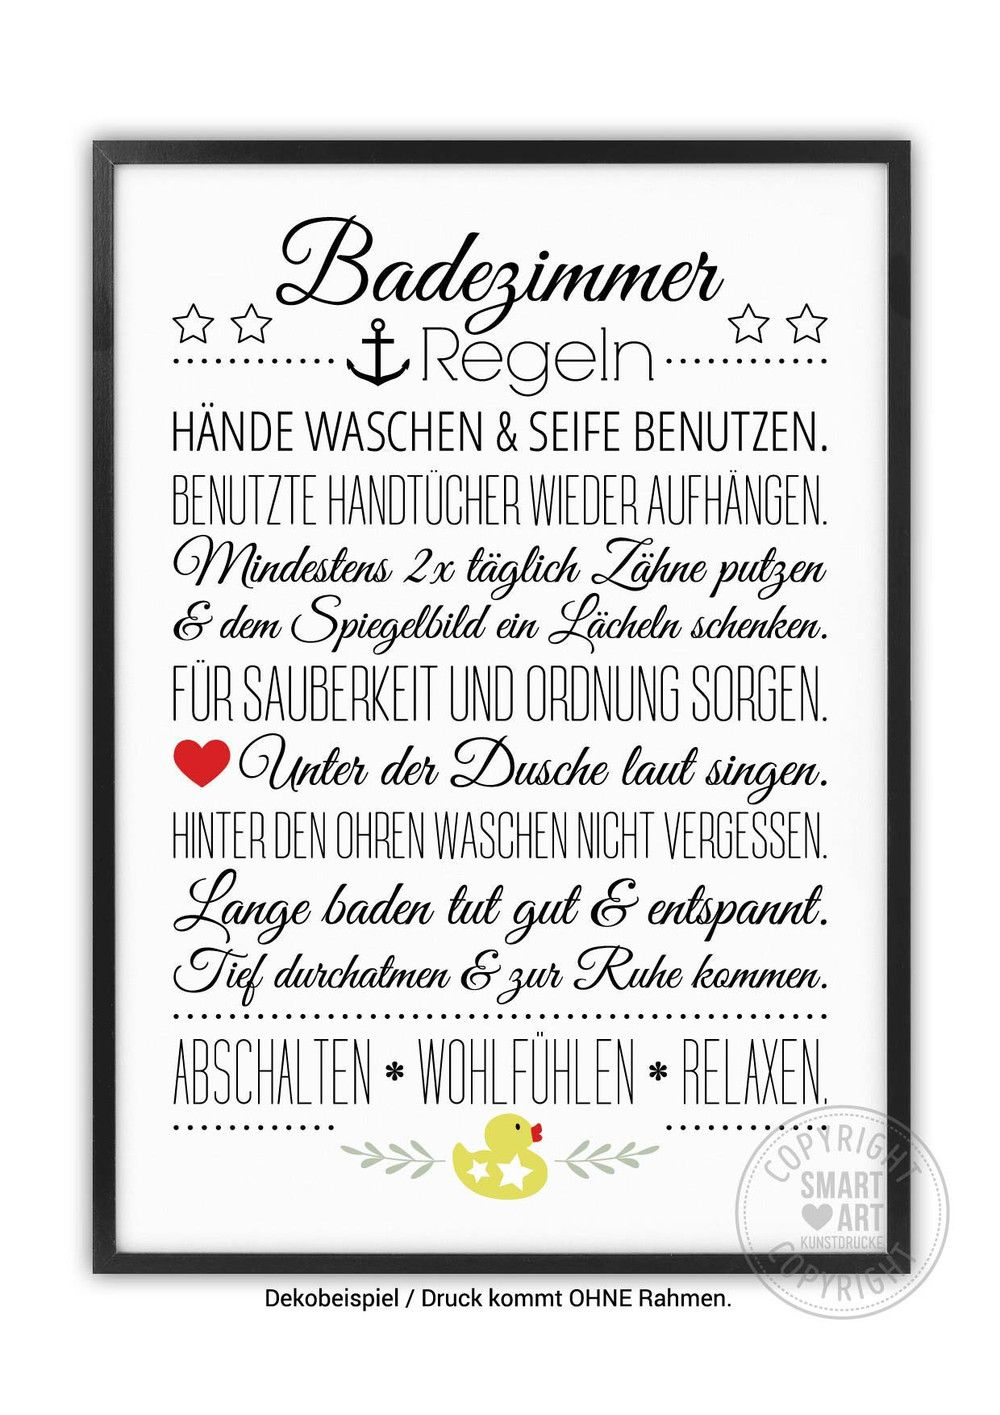 Bad Hausordnung Smart Art Kunstdrucke Badezimmerbild Etsy Bathroom Pictures House Rules Smart Art